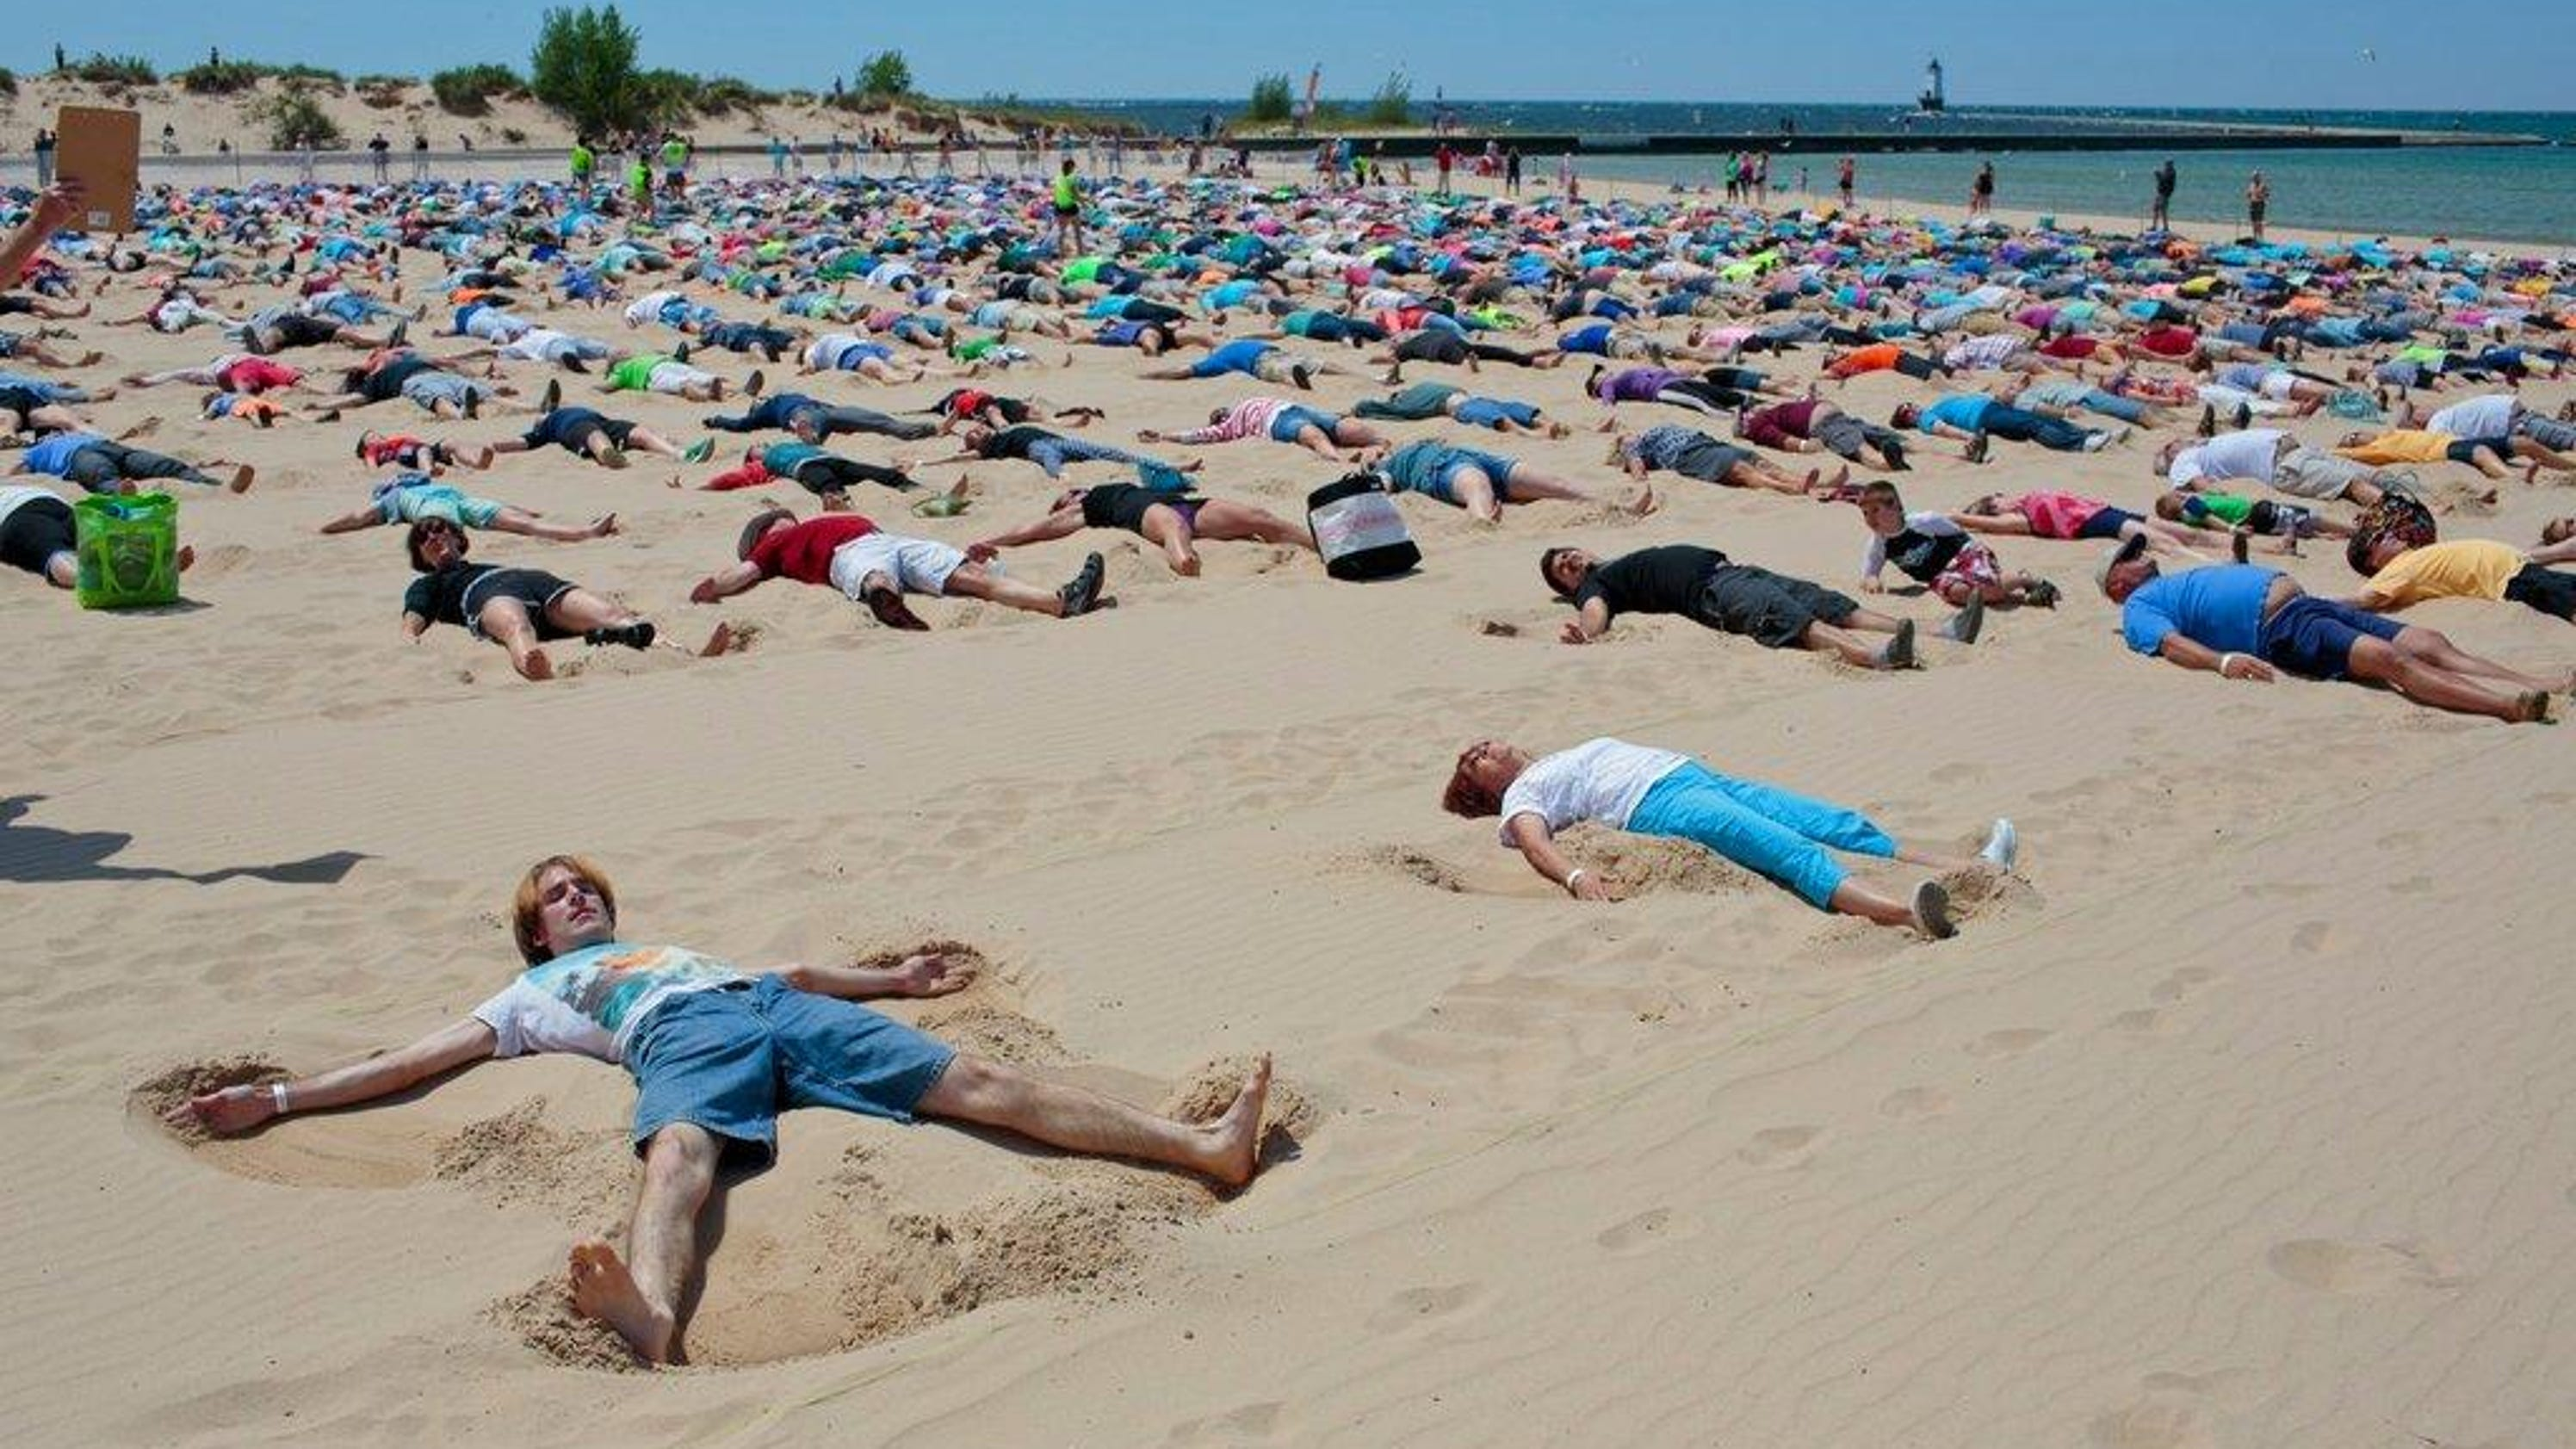 A western Michigan city has broken a mark set by the Guinness World Records  for the most people simultaneously making sand angels at a beach.